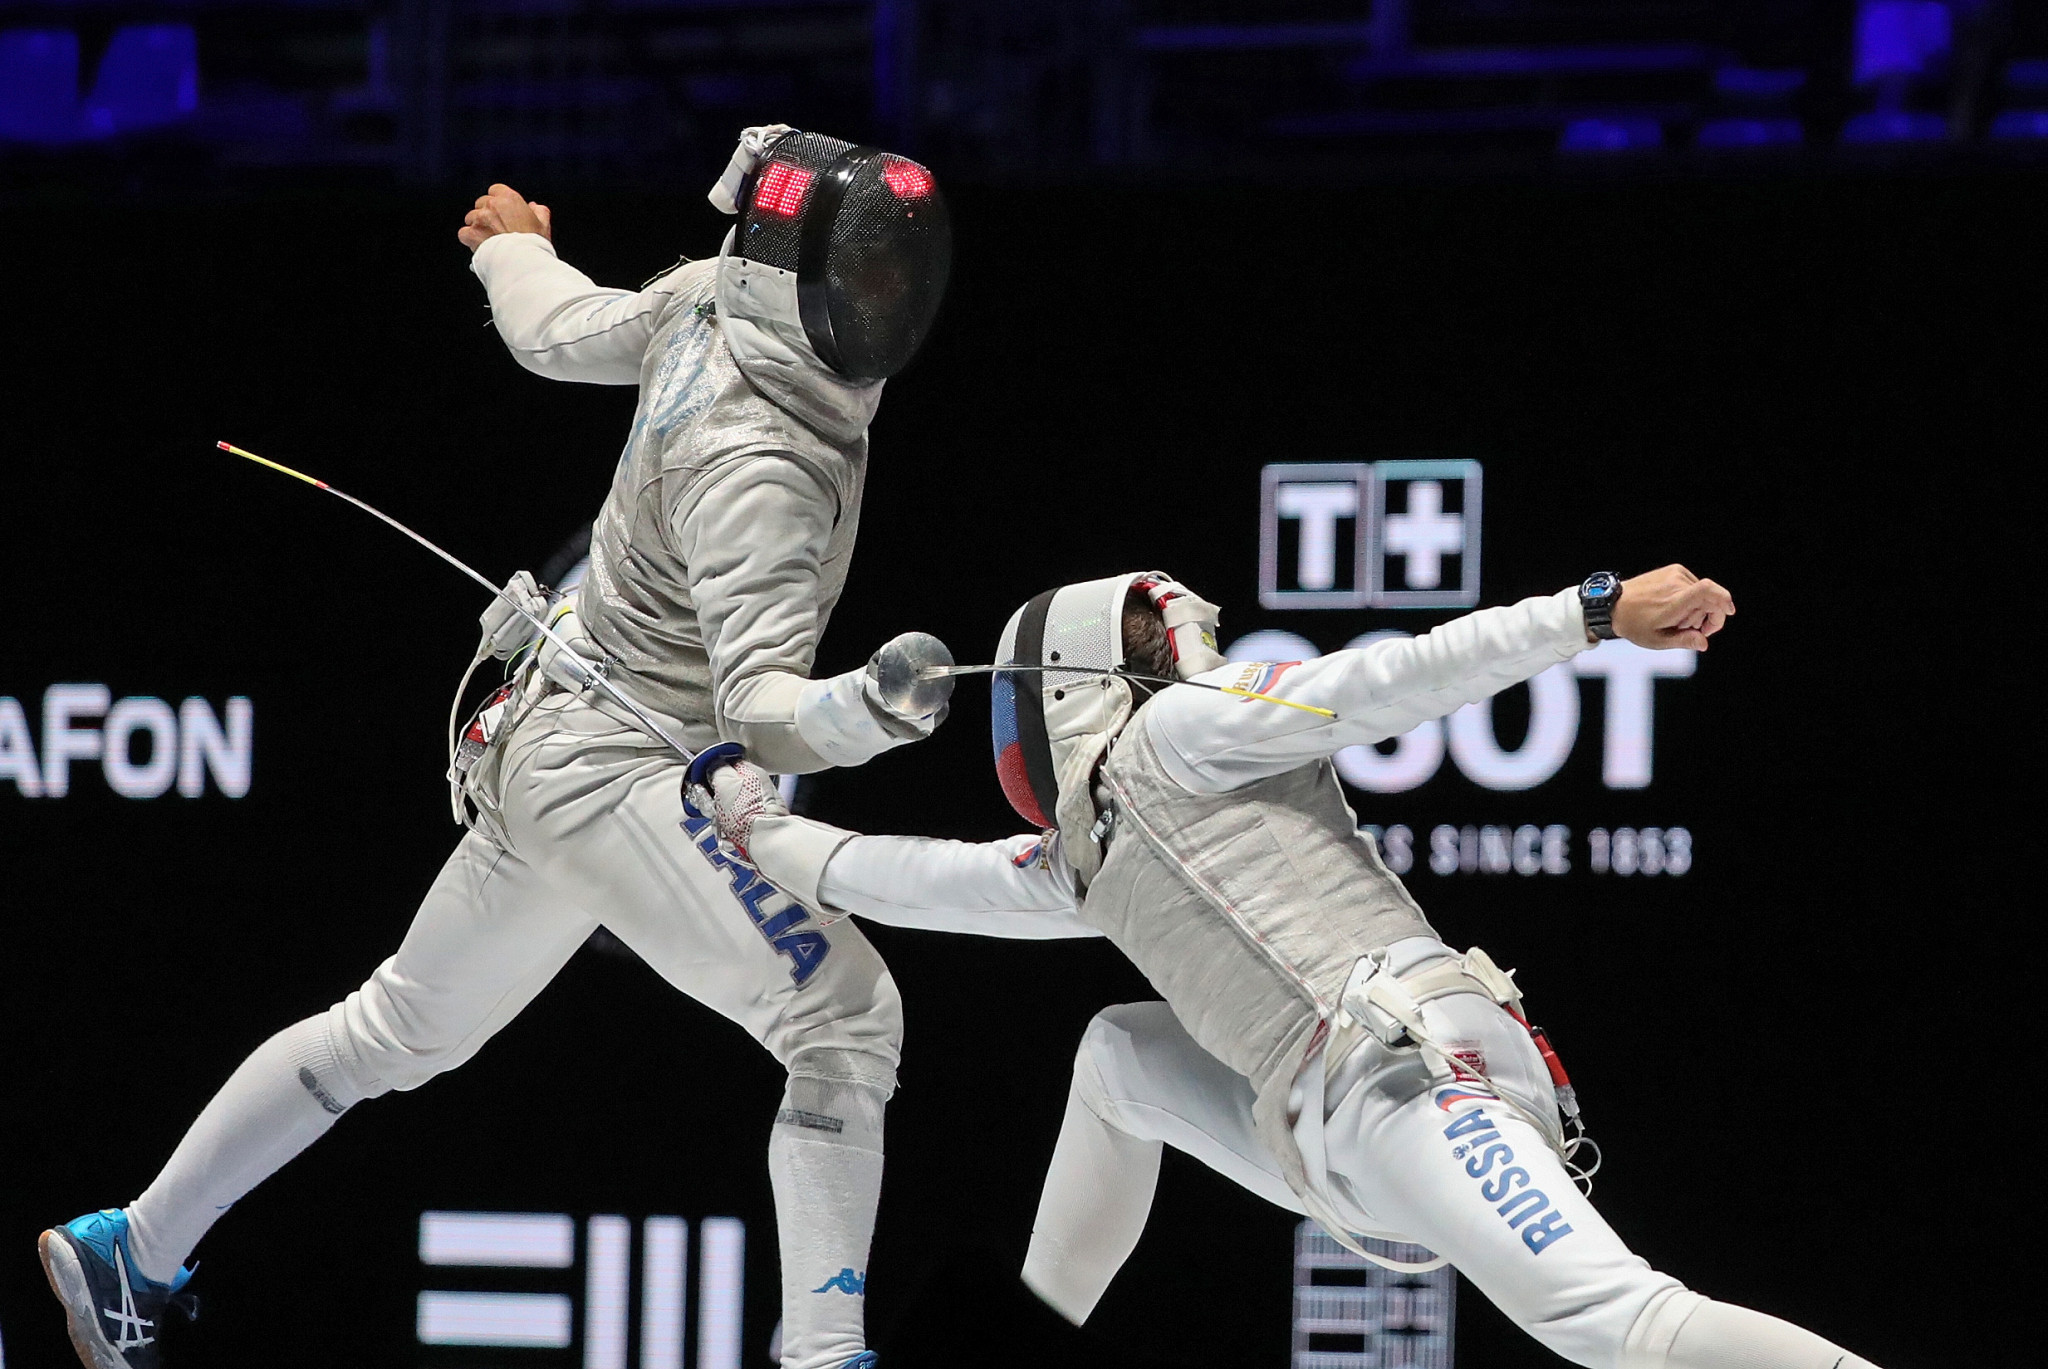 Italy's Alessio Foconi is the top seed at the FIE Men's Foil World Cup in Bonn ©Getty Images